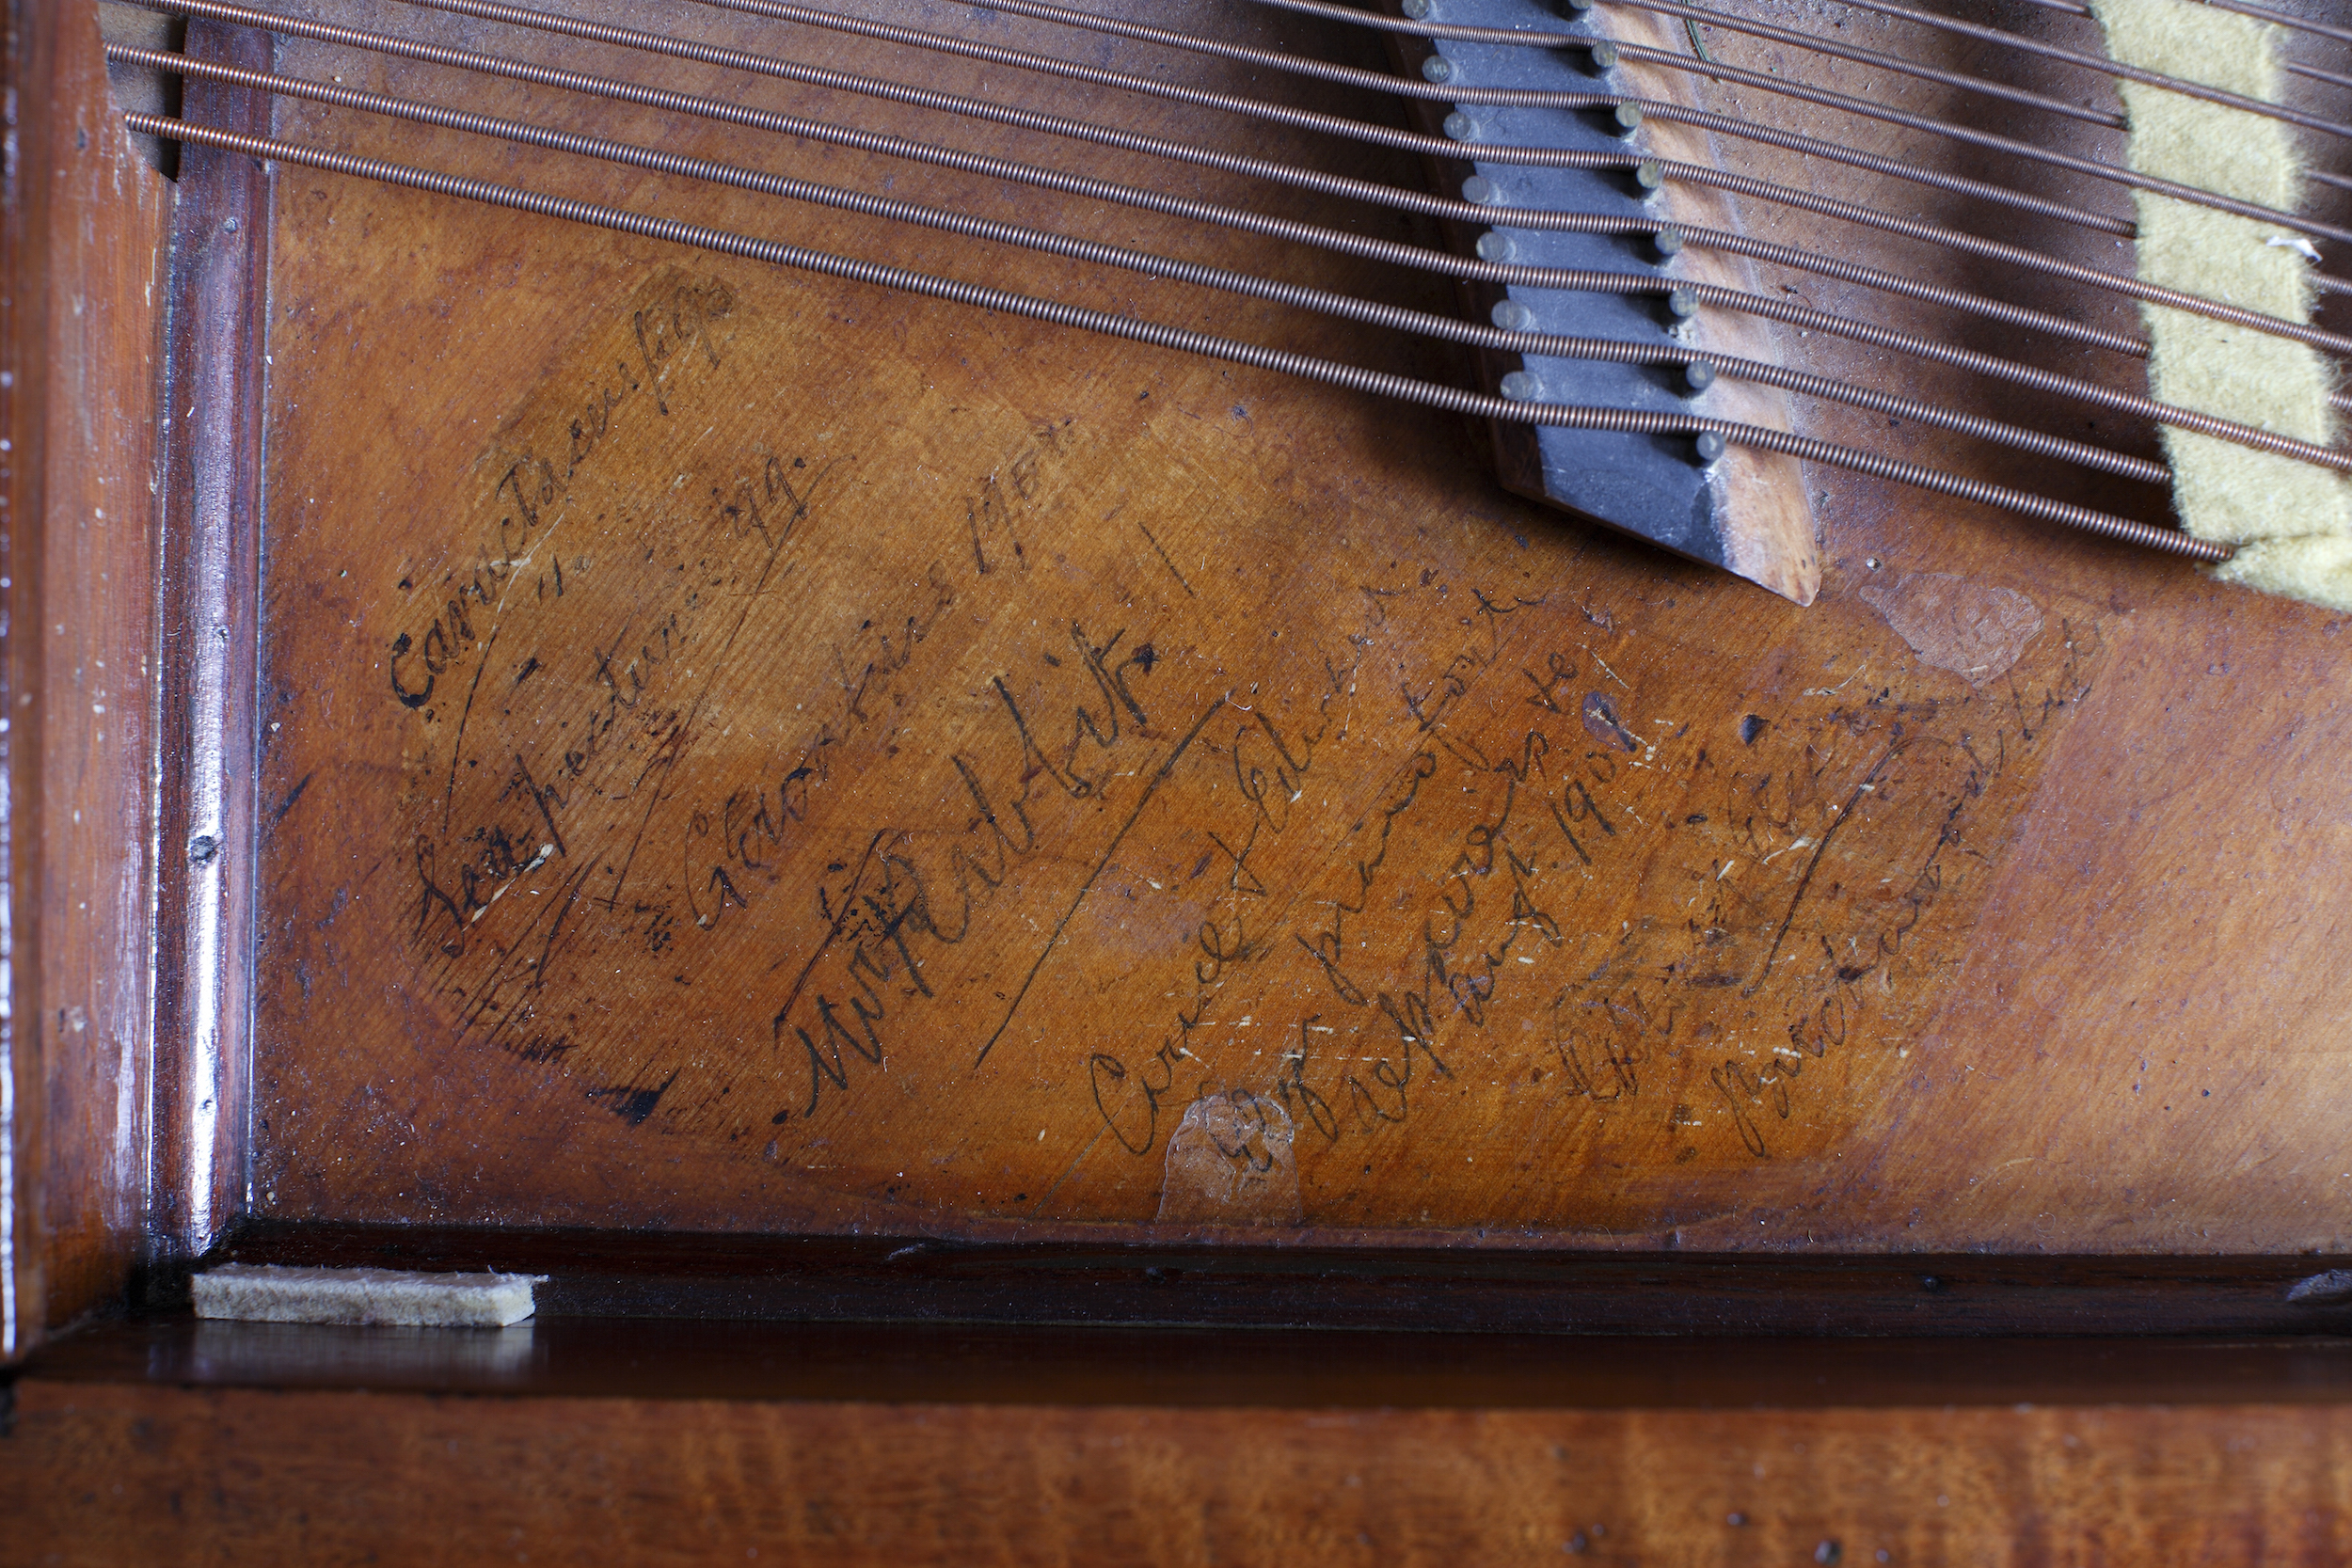 Elgar's square piano by John Broadwood and Sons, inscription